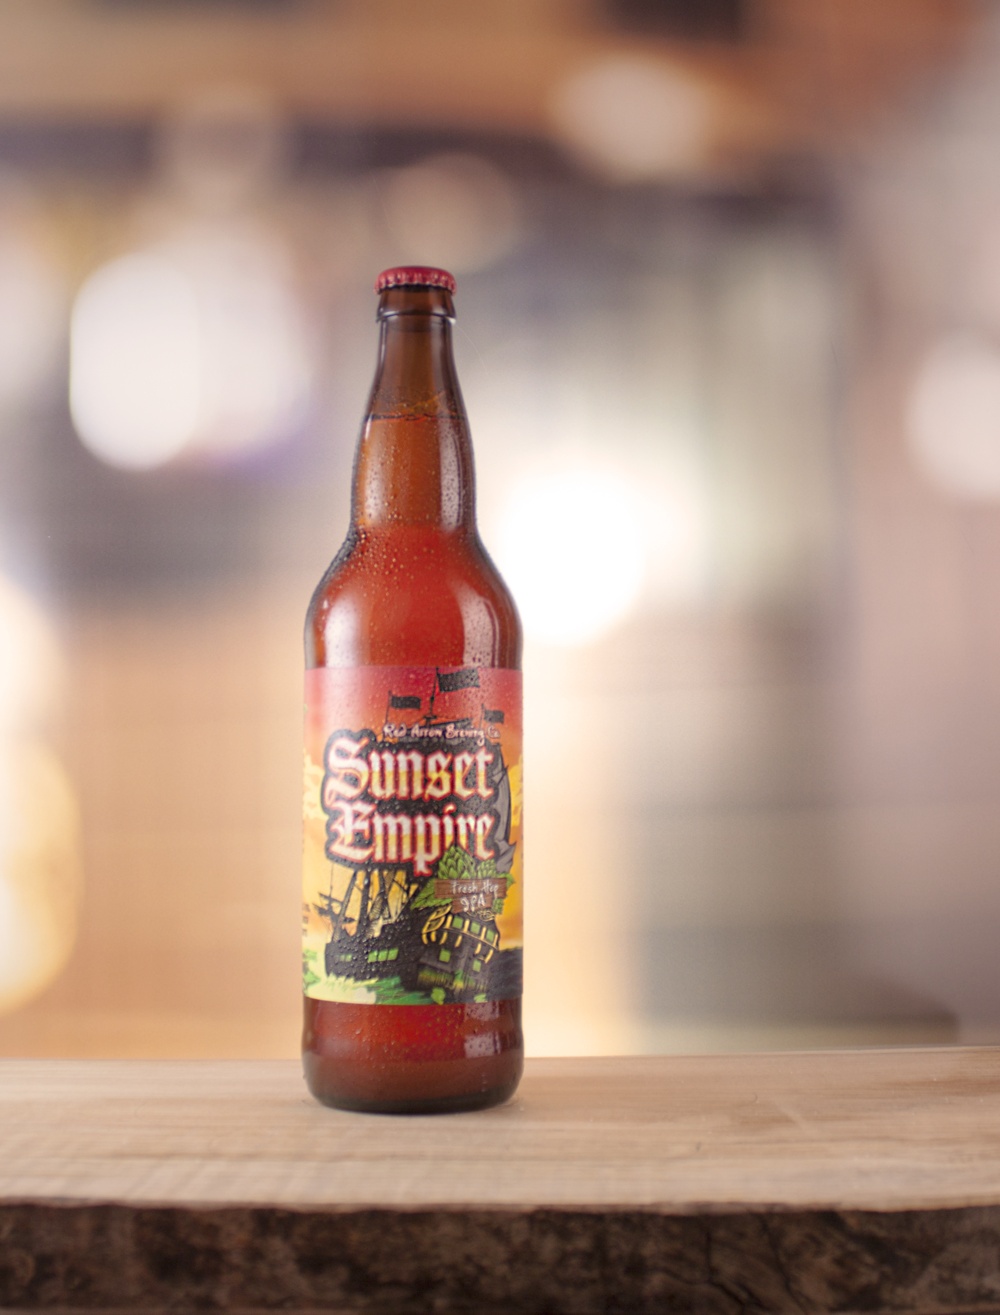 Fresh Hop Co-Op: Sunset Empire New England Style IPA:  Bright yellow-gold with a little haze |  IBU's: 60  |  ALC: 6.0%